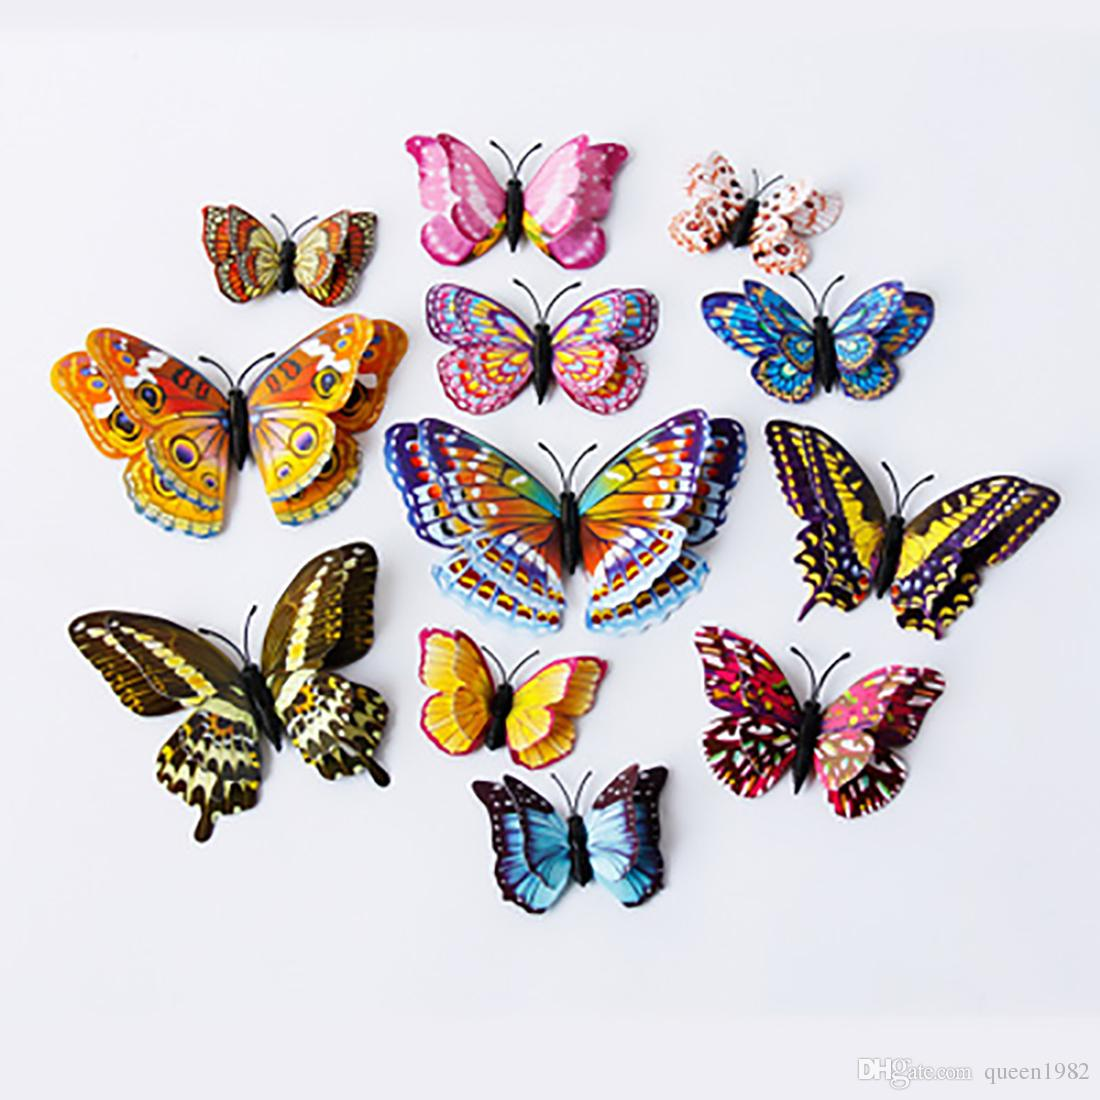 12pcs Wall Decal Butterfly, Wall Sticker Decals for Room Home Nursery Decor Luminous for living room